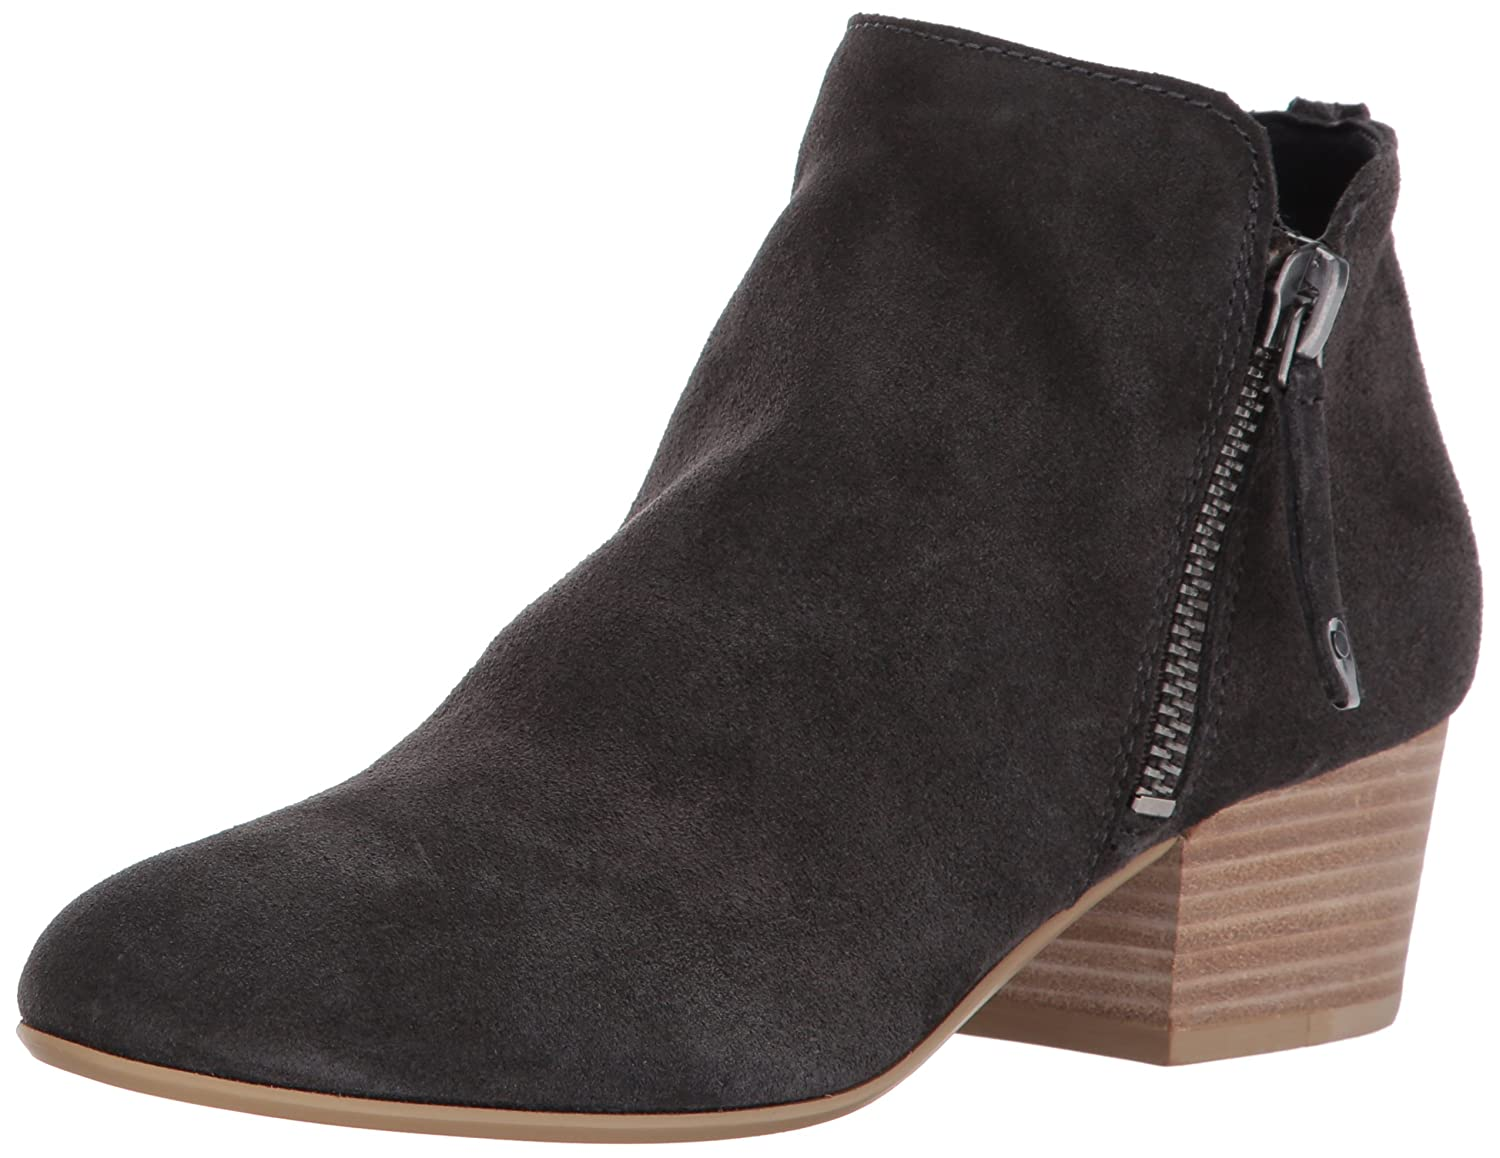 Dolce Vita Women's Gertie Ankle Boot B06XGMZ4YY 6.5 B(M) US|Anthracite Suede